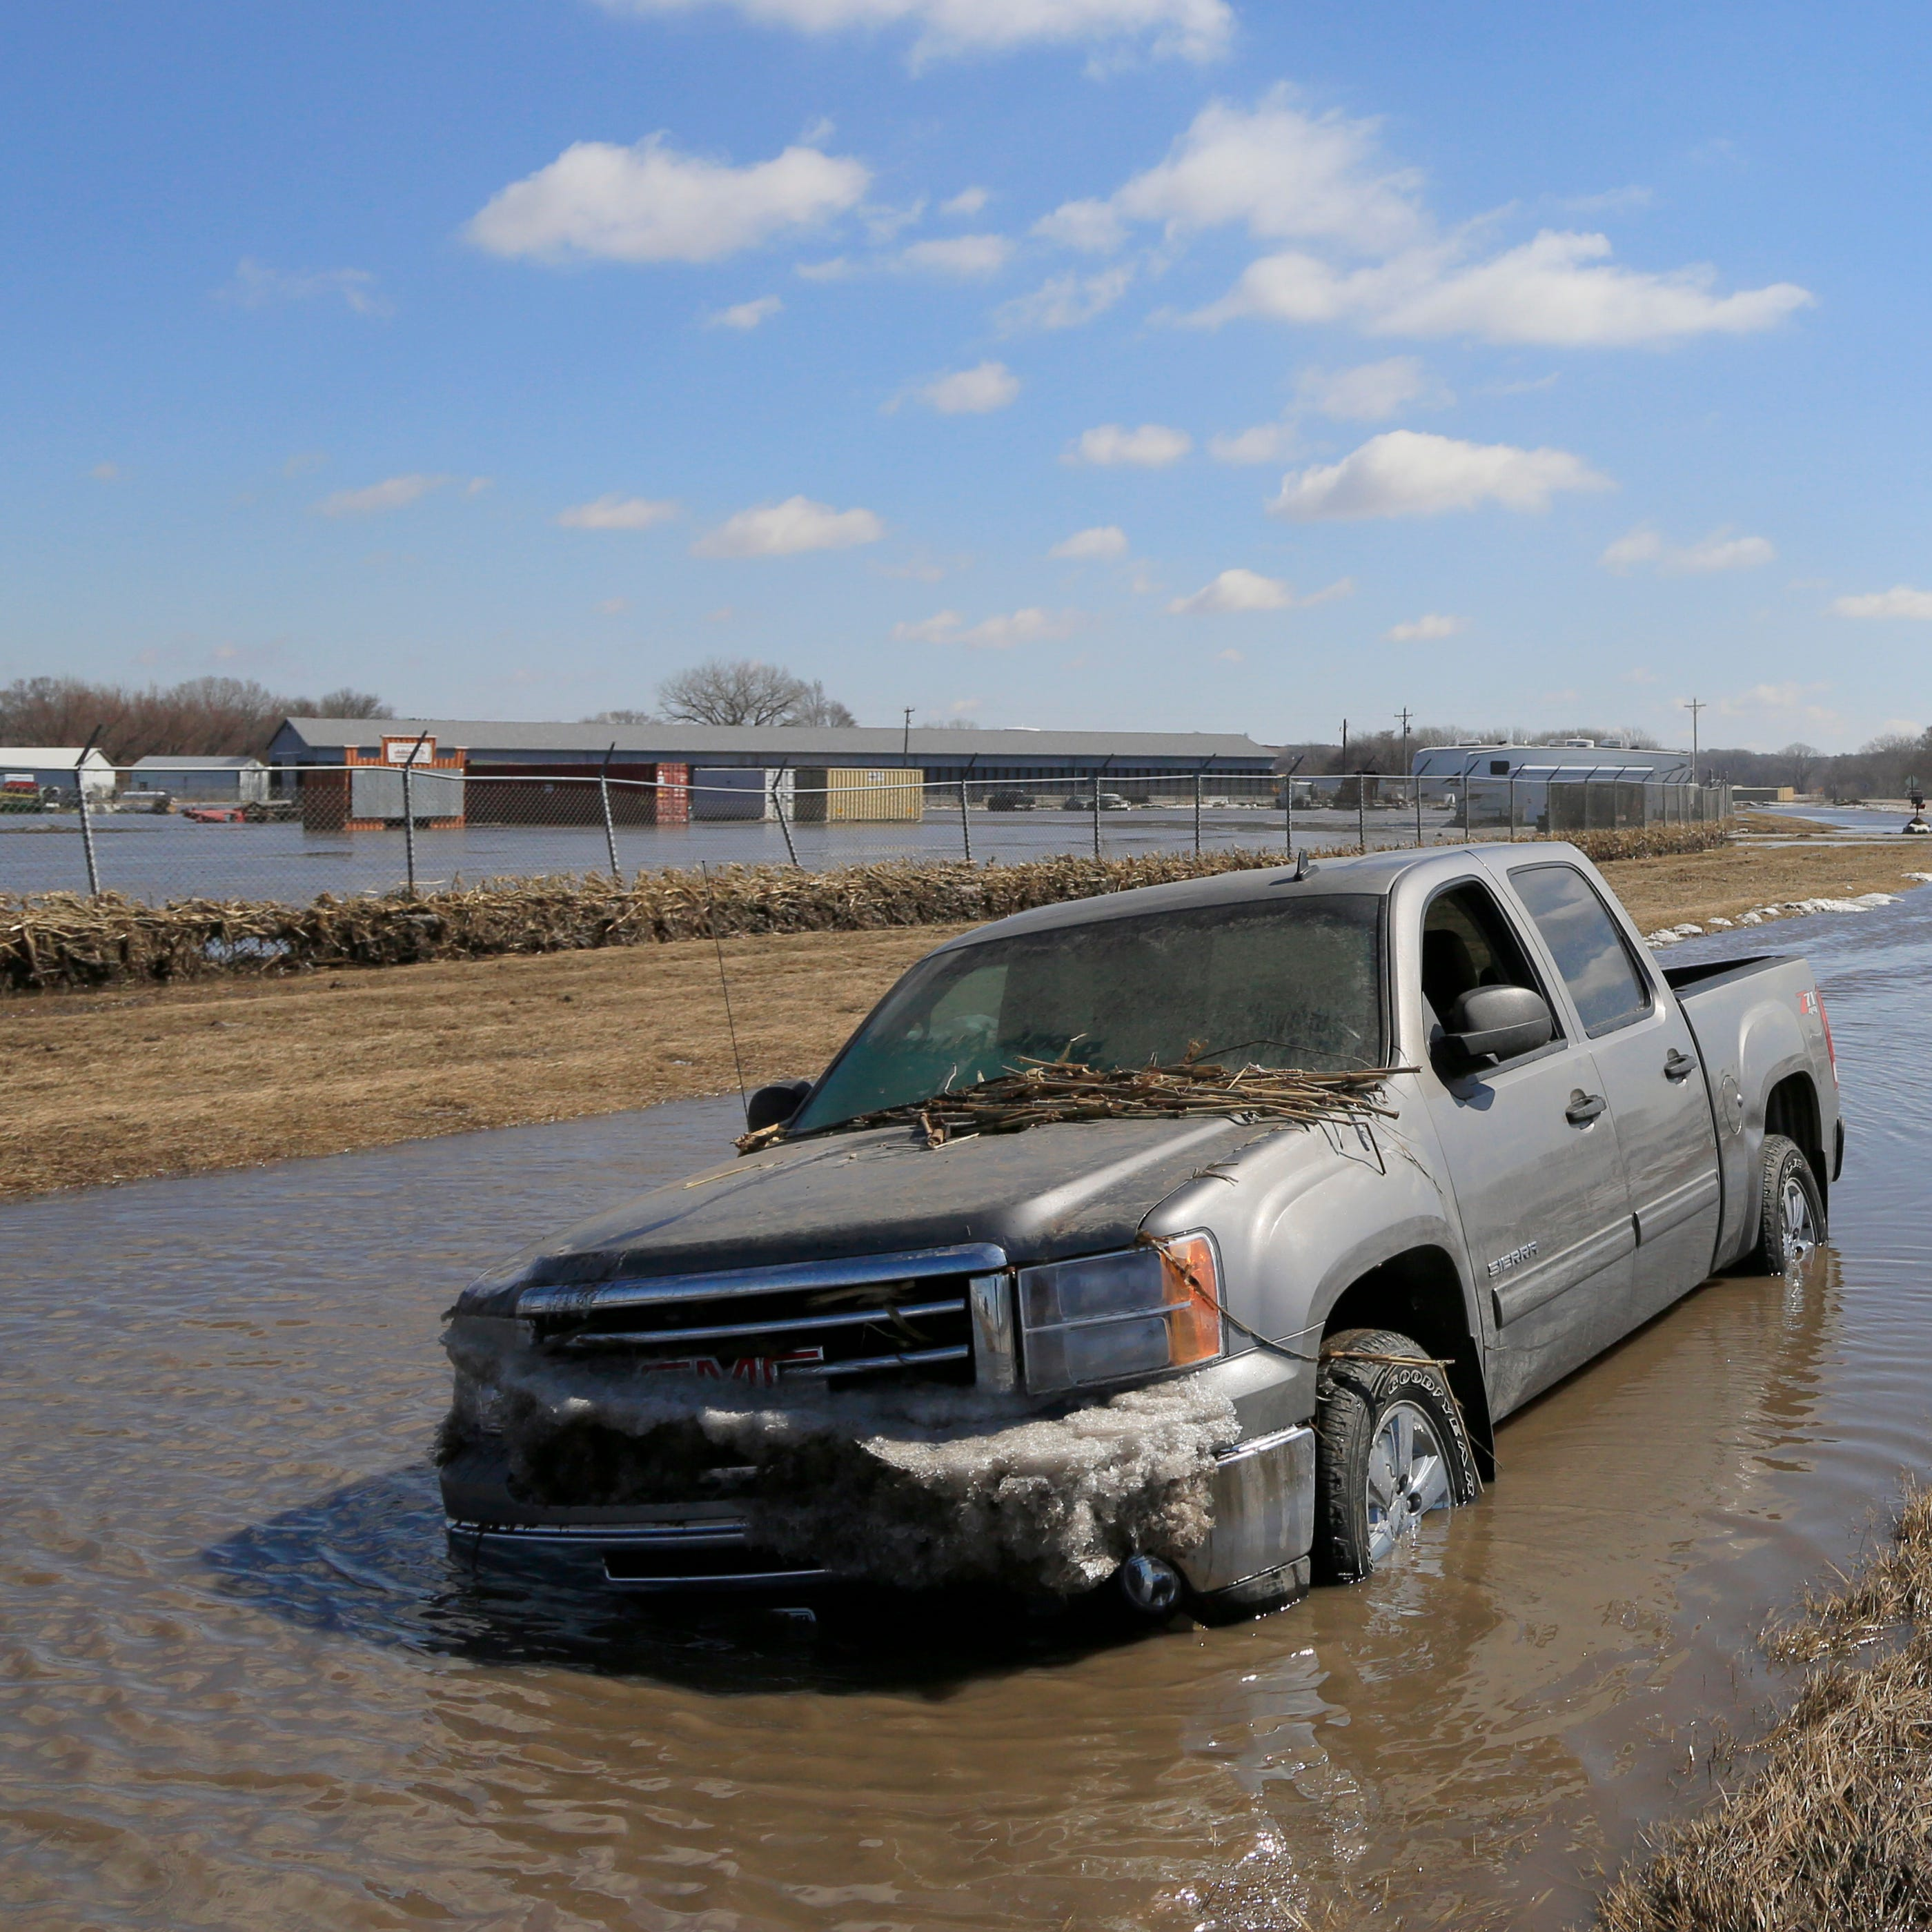 Western Iowa farmers rush to save grain, livestock before Missouri flood waters overtake them